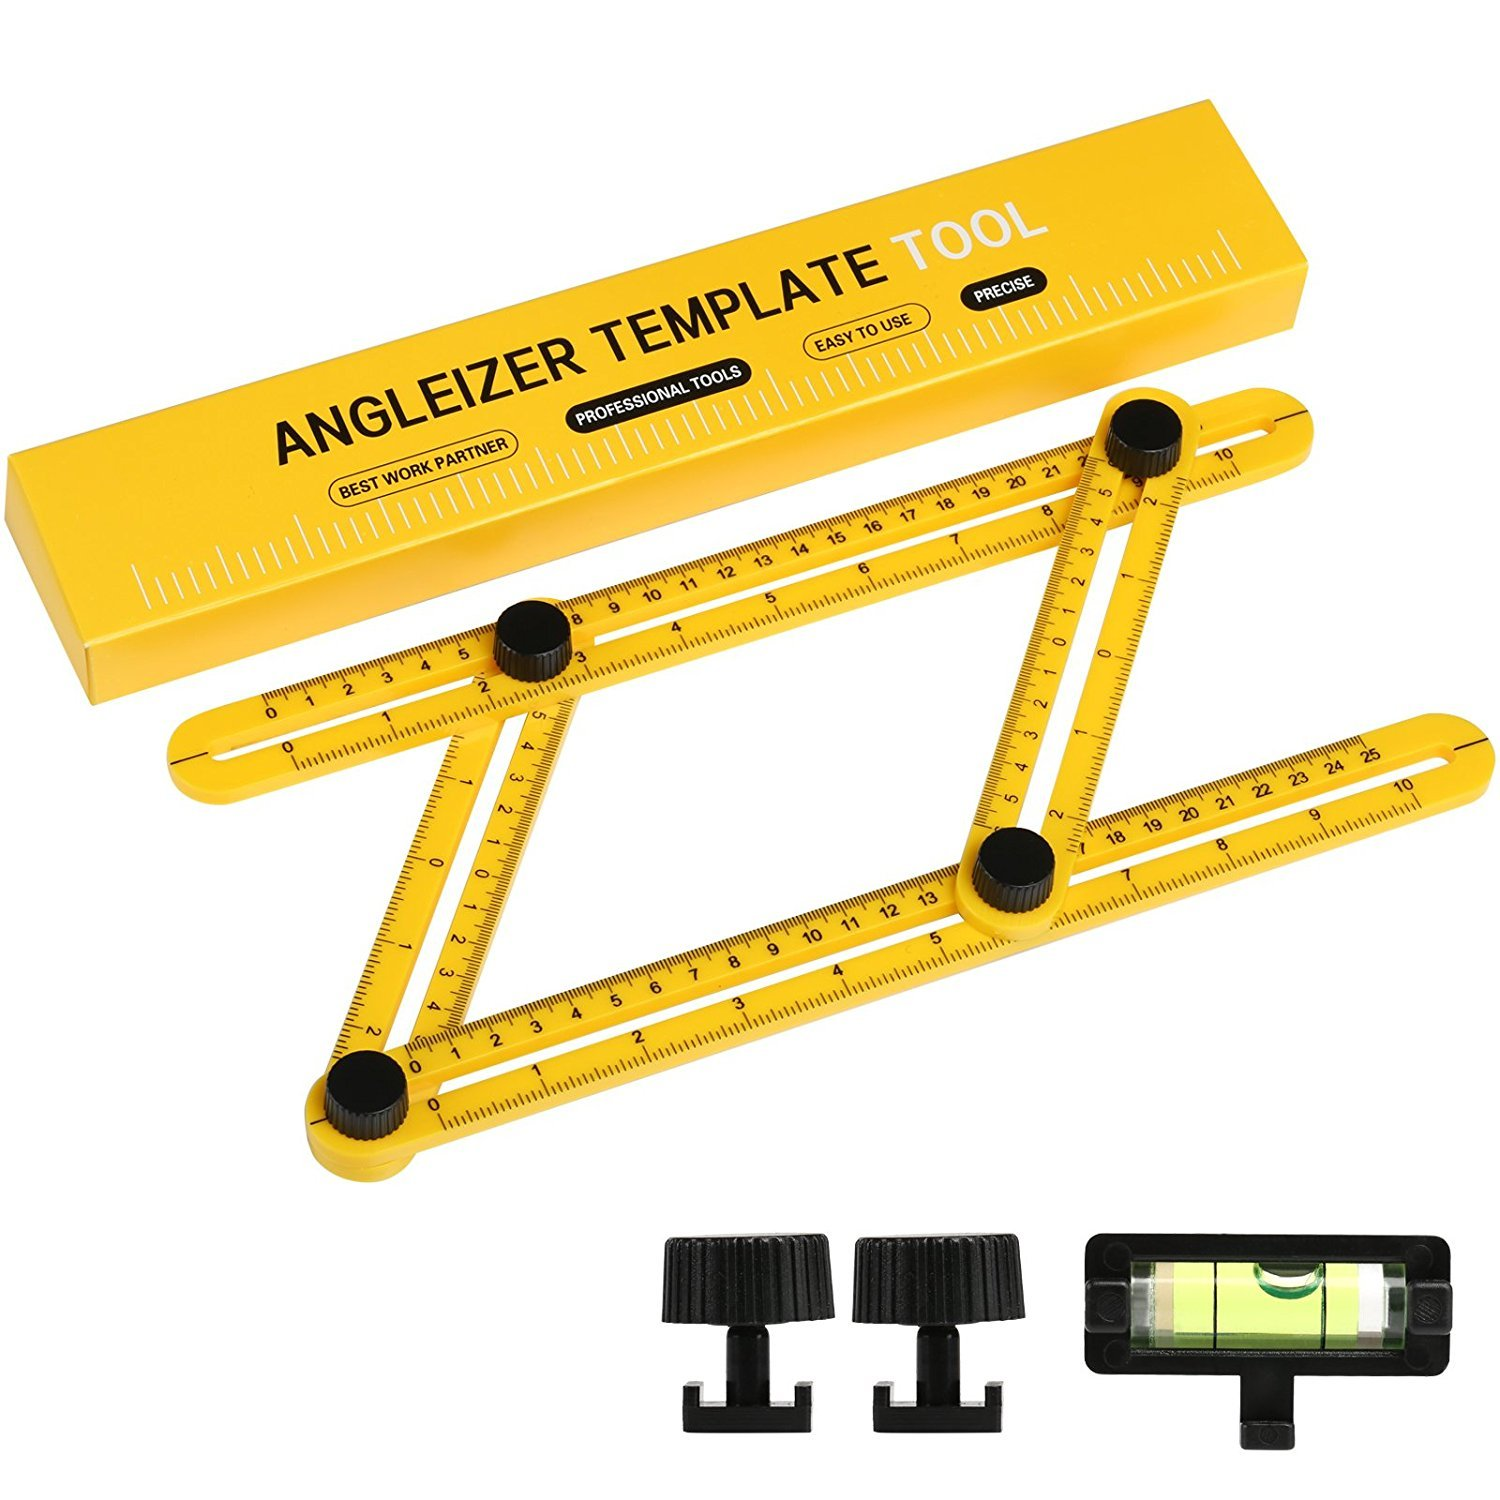 GWHOLE Angleizer Template Tool Multi-Angle Measuring Ruler General Angleizer Template Ruler for Handymen, Builders, Craftsmen